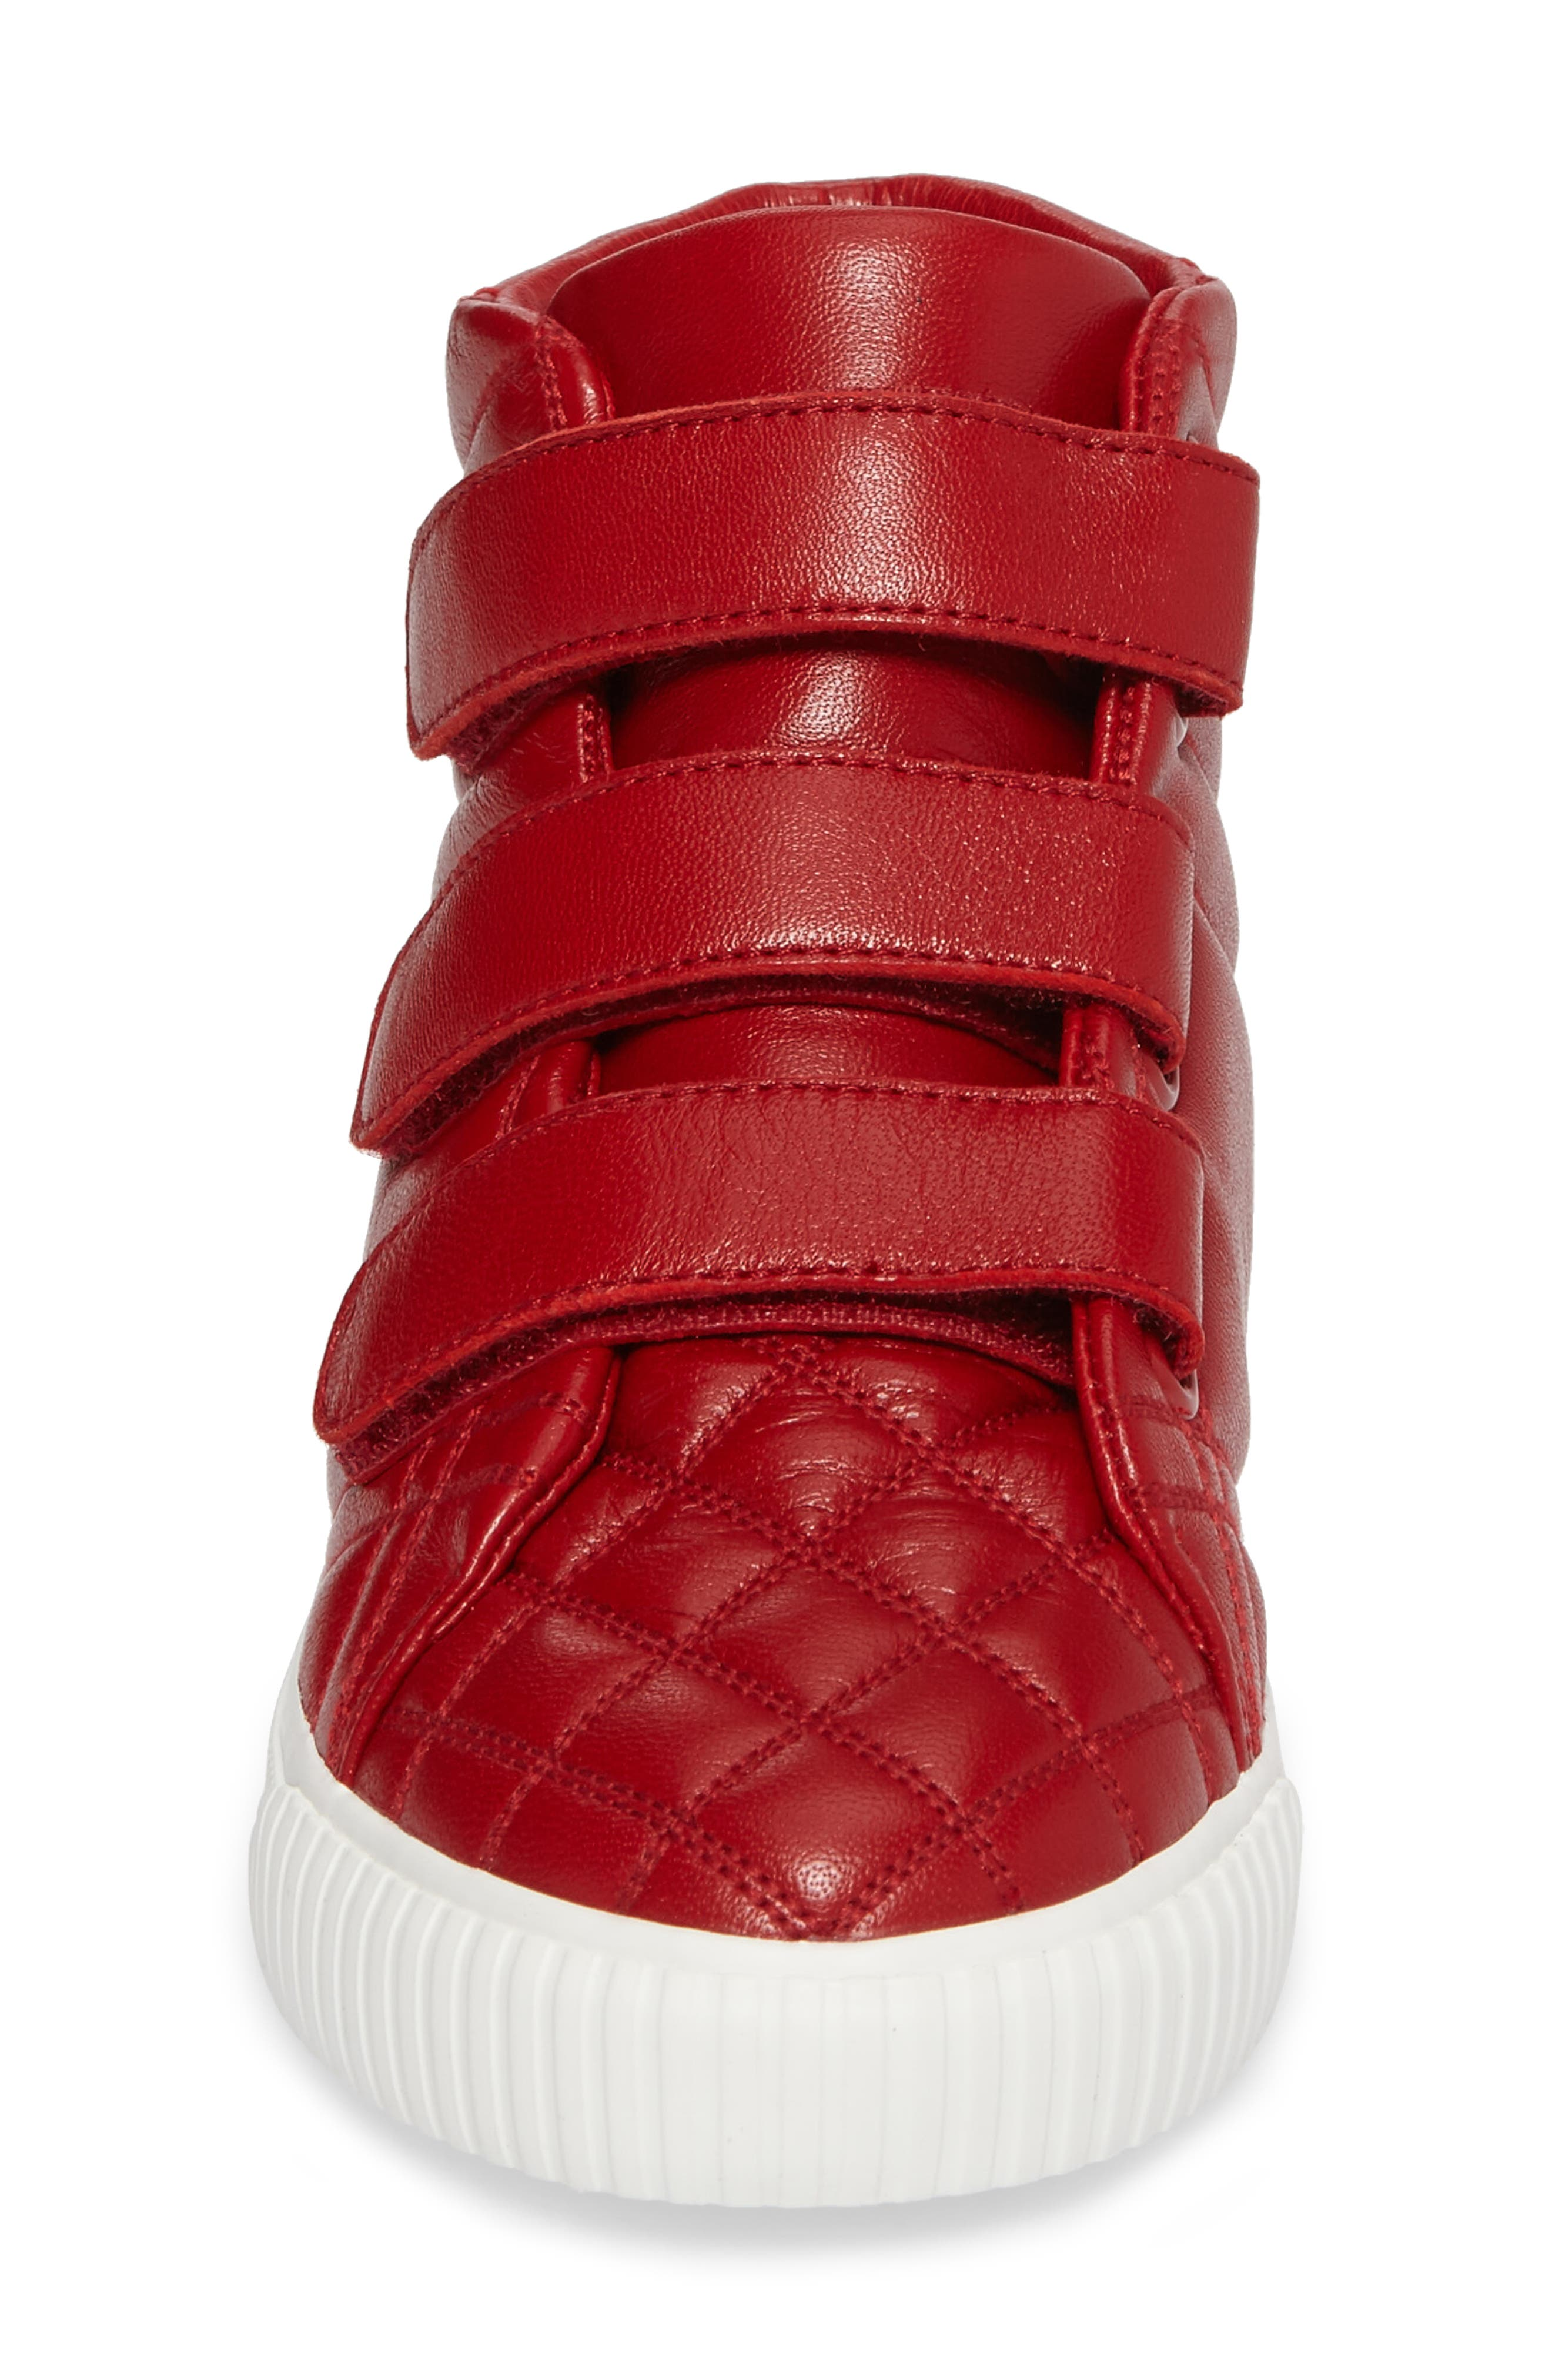 Sturrock Quilted High Top Sneaker,                             Alternate thumbnail 8, color,